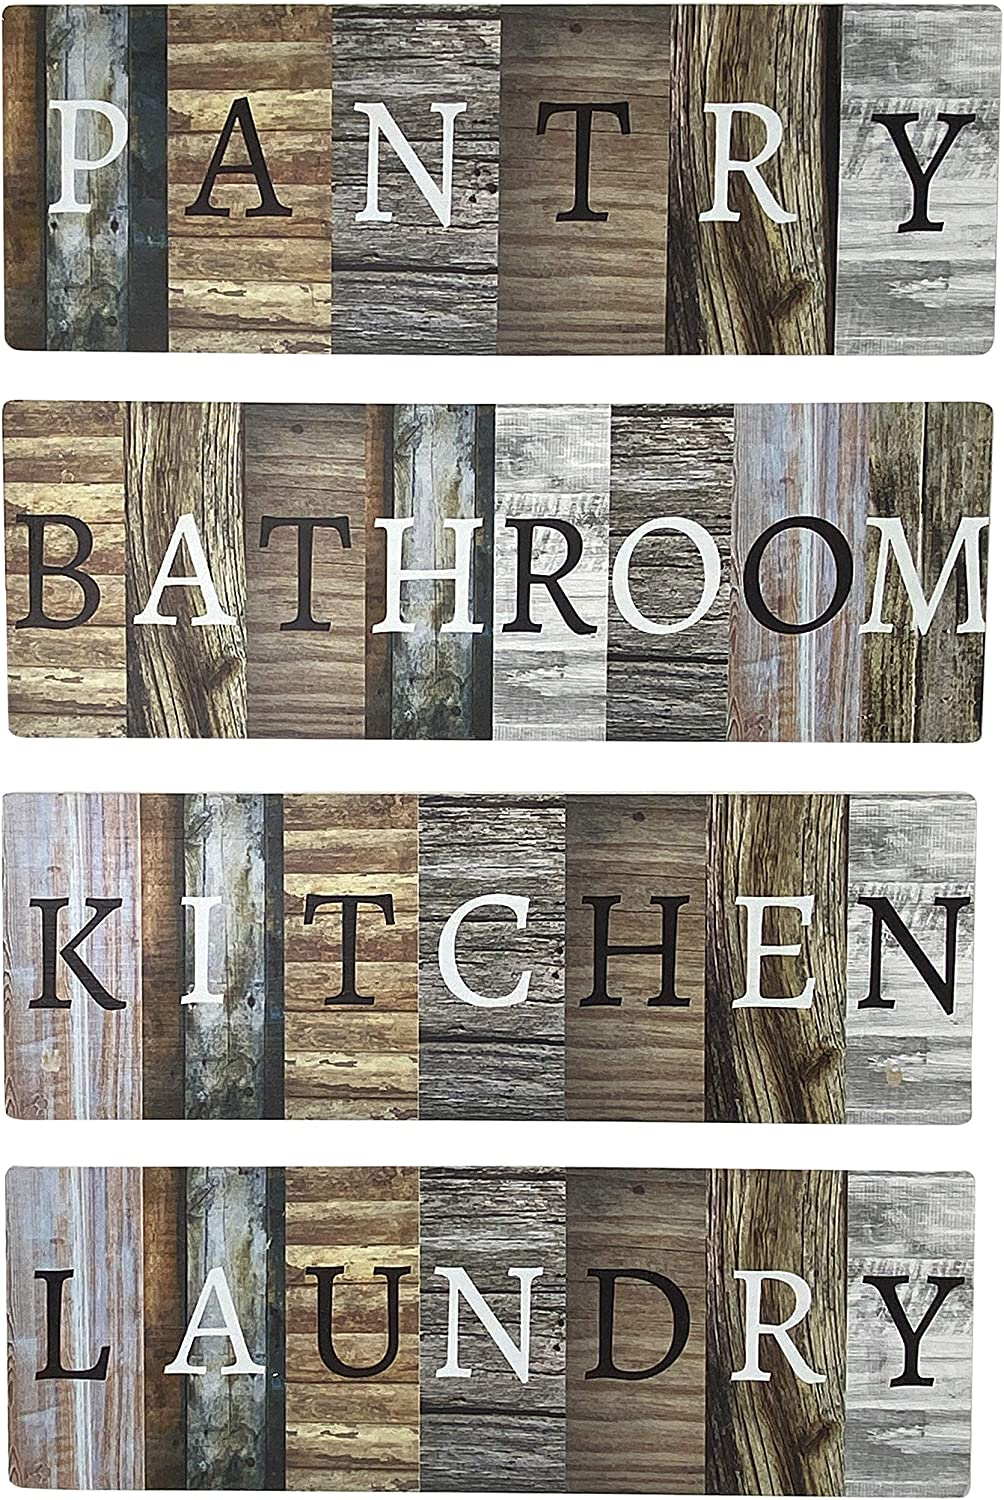 Laundry Room, Kitchen, Bathroom, Pantry Sign Rustic Farmhouse Decorative 4 Piece Set - Solid Wood 17 x 6 Inch Home Decor Wall Art Signs for The Home